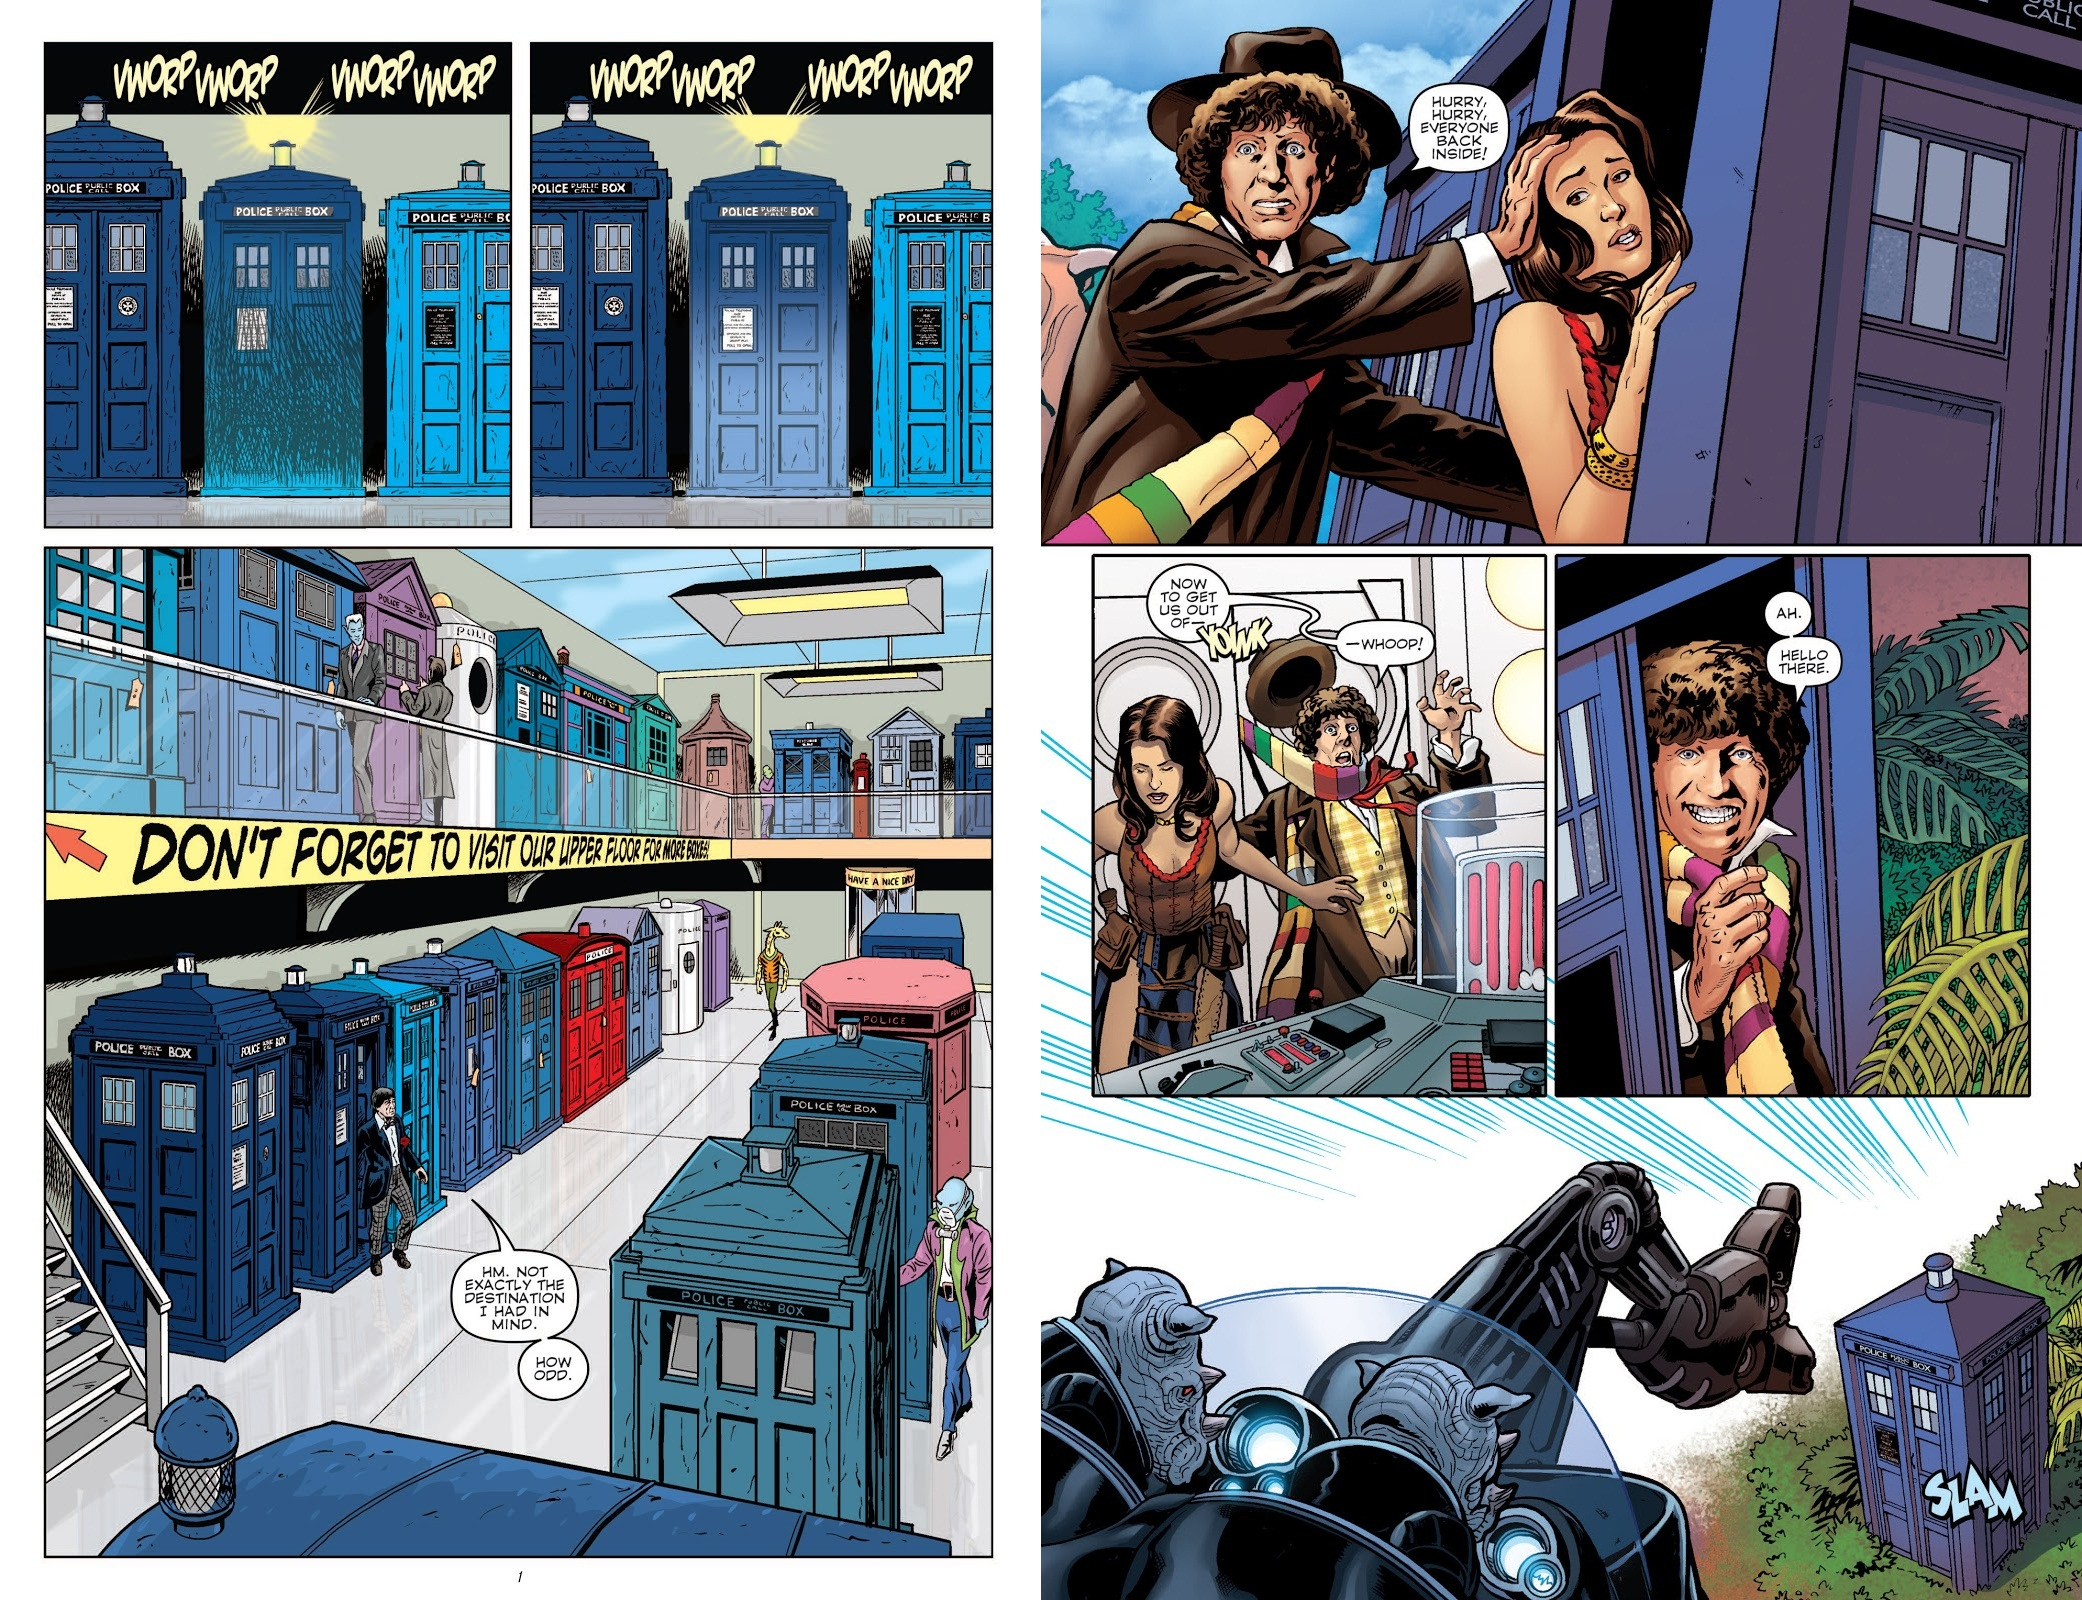 Doctor Who Prisoners of Time Vol 1 review